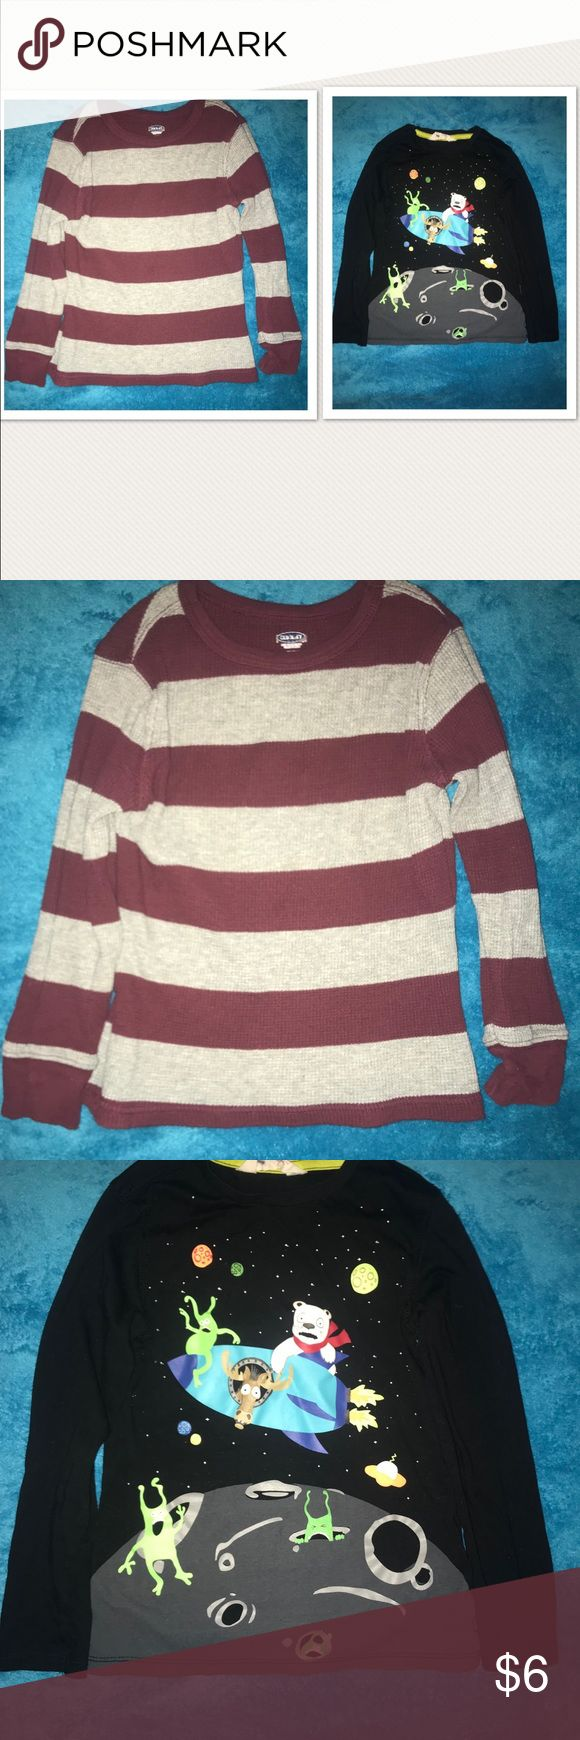 2 Long Sleeve Shirts Two Long Sleeves Shirts  Black & Grey Shirt - H&M - US Size 4-6 yrs old - worn once Grey & Burgundy (Thermo type) Shirt - Old Navy - 5T - worn a couple of times - in good condition Shirts & Tops Tees - Long Sleeve